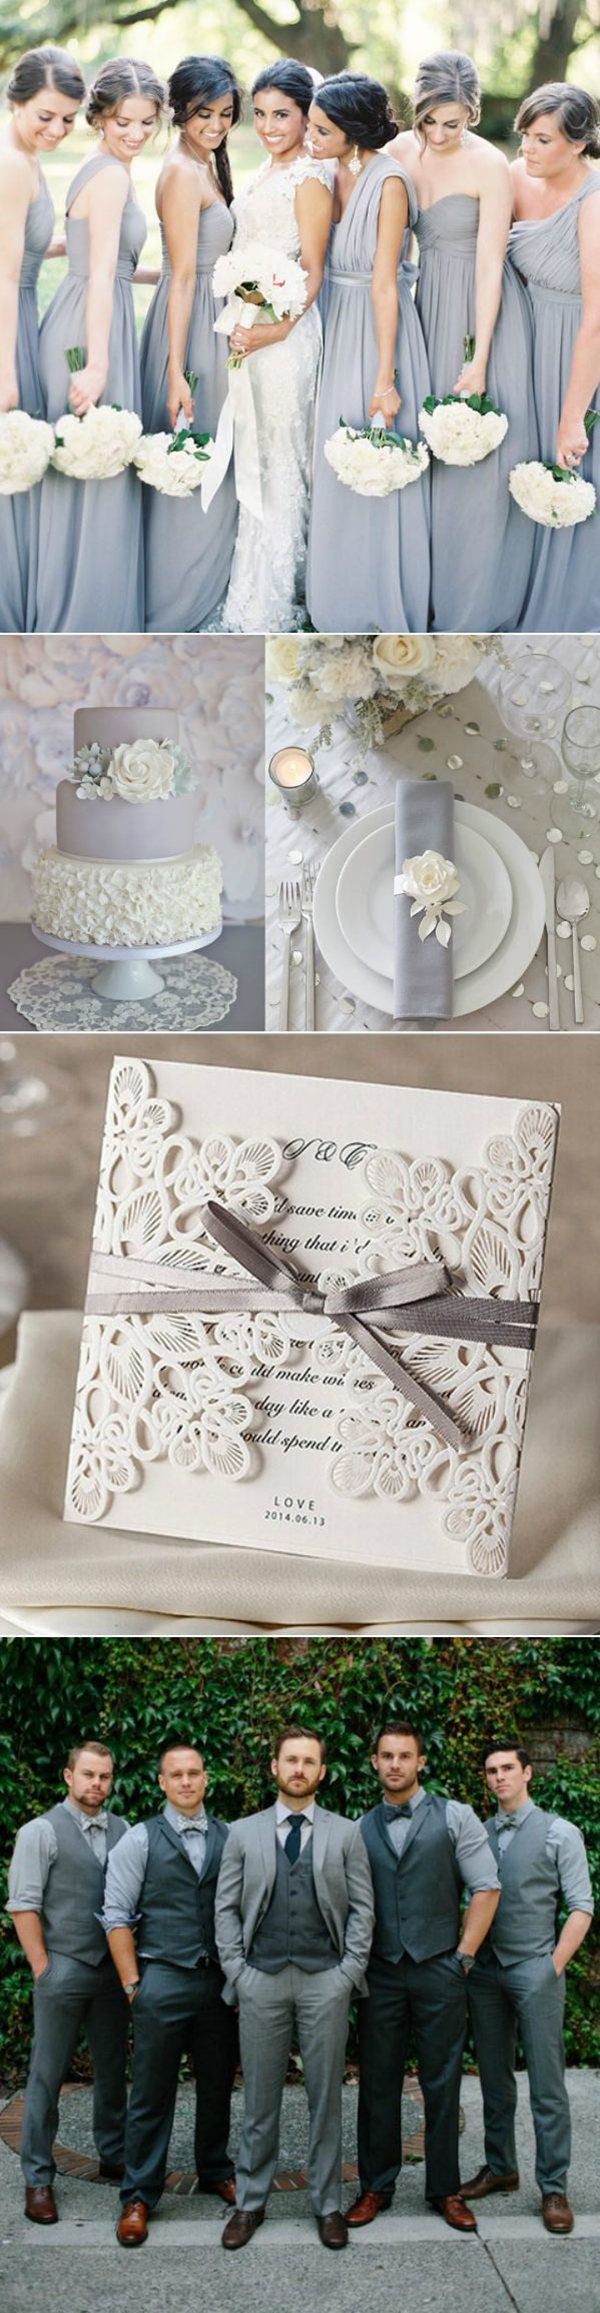 shabby chic grey wedding ideas with laser cut wedding invitations                                                                                                                                                                                 More